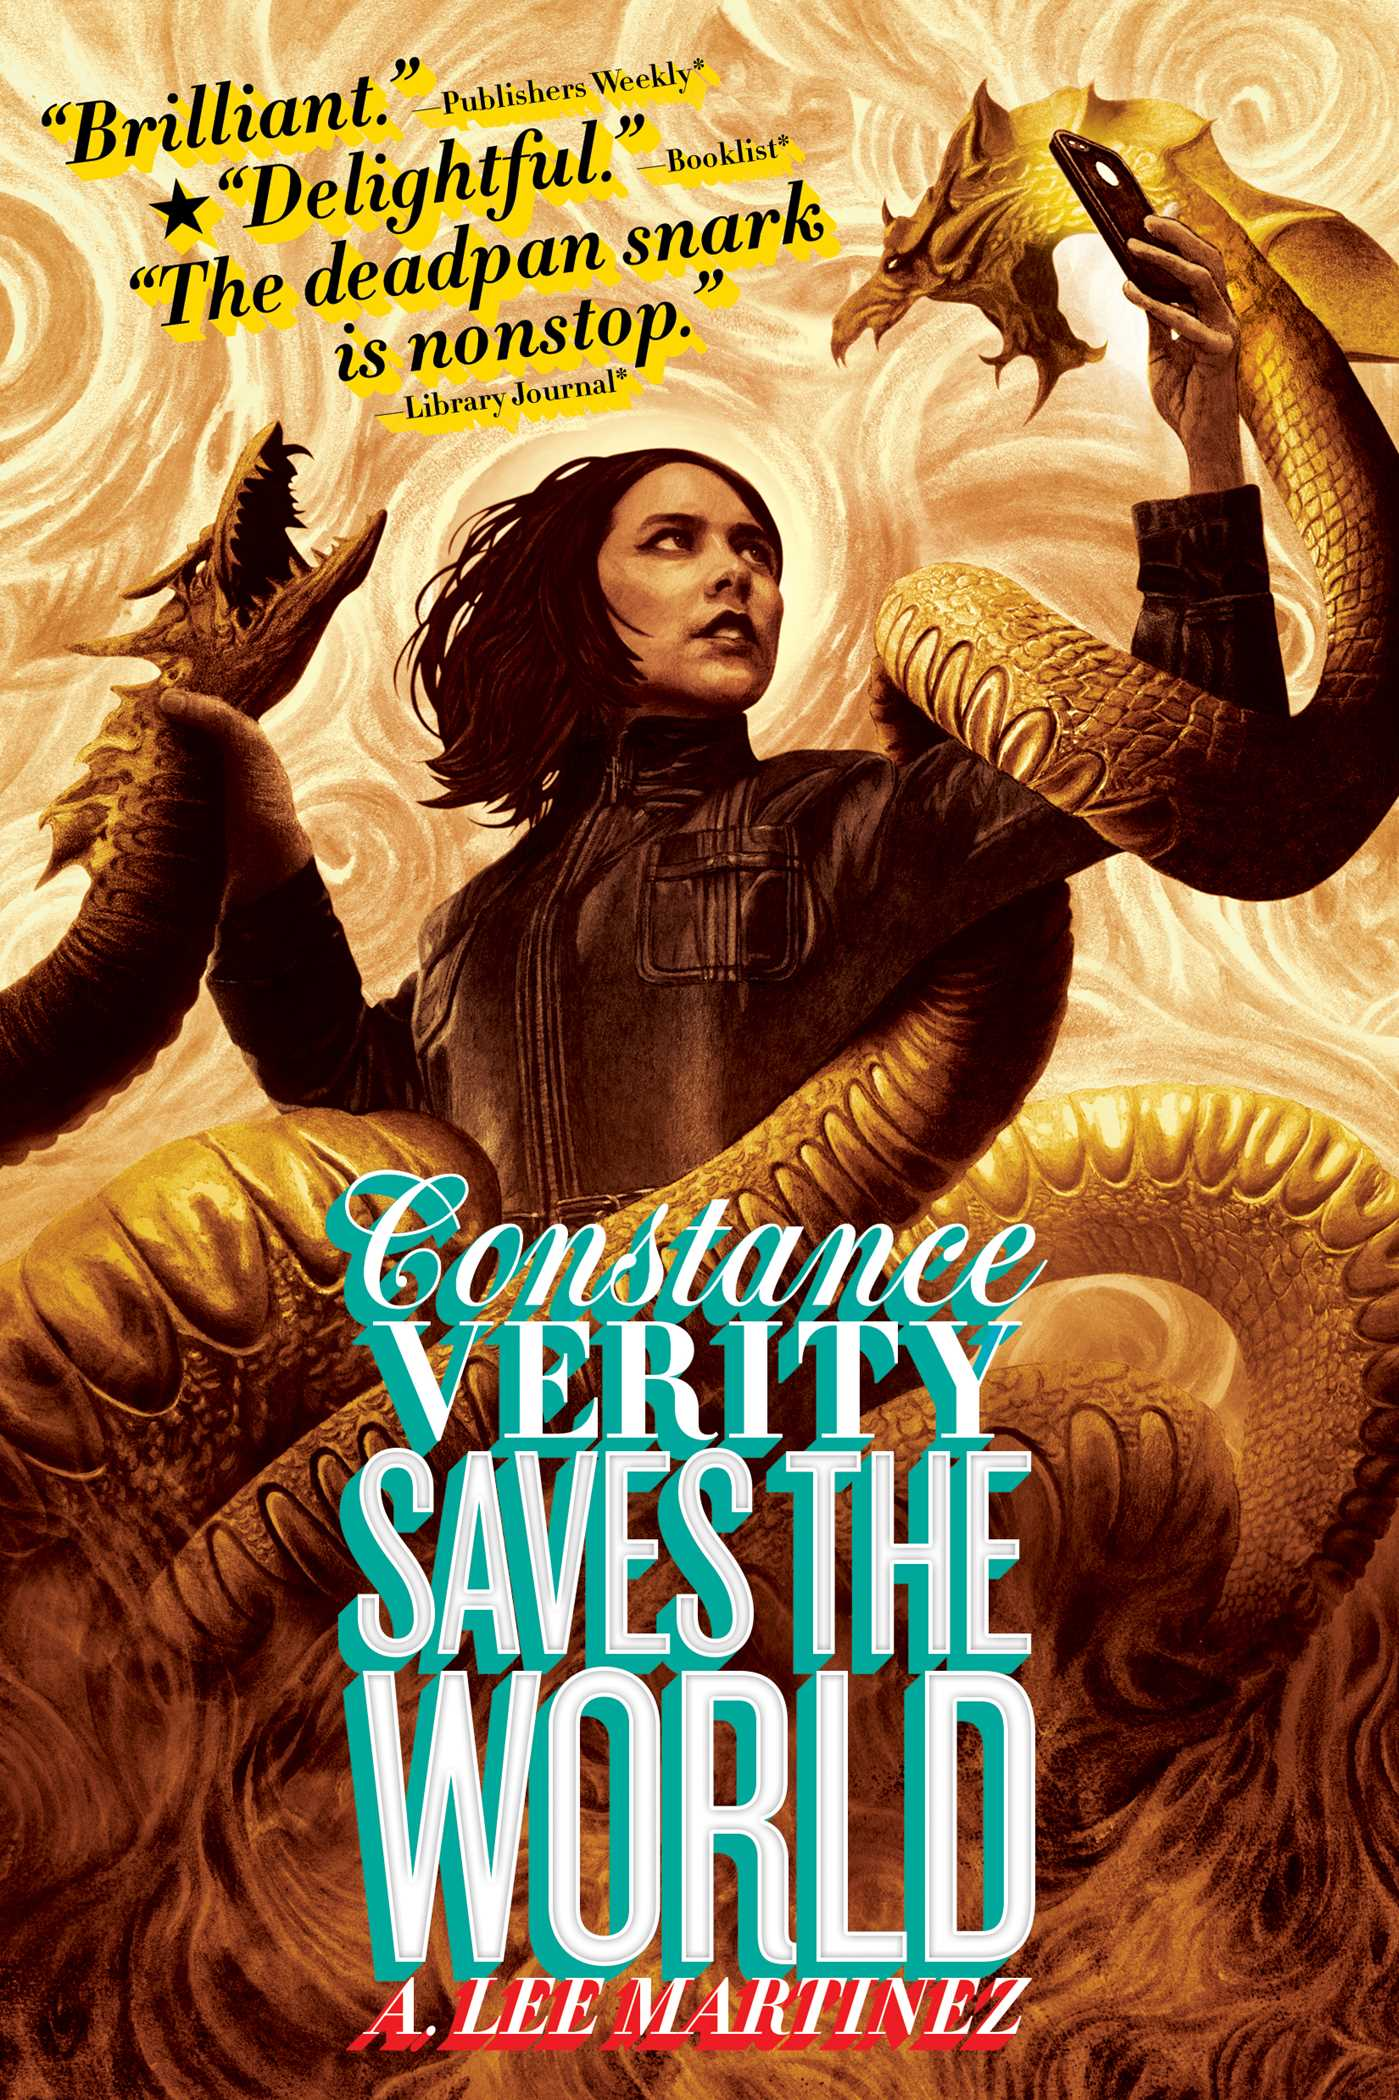 Constance verity saves the world 9781481443555 hr